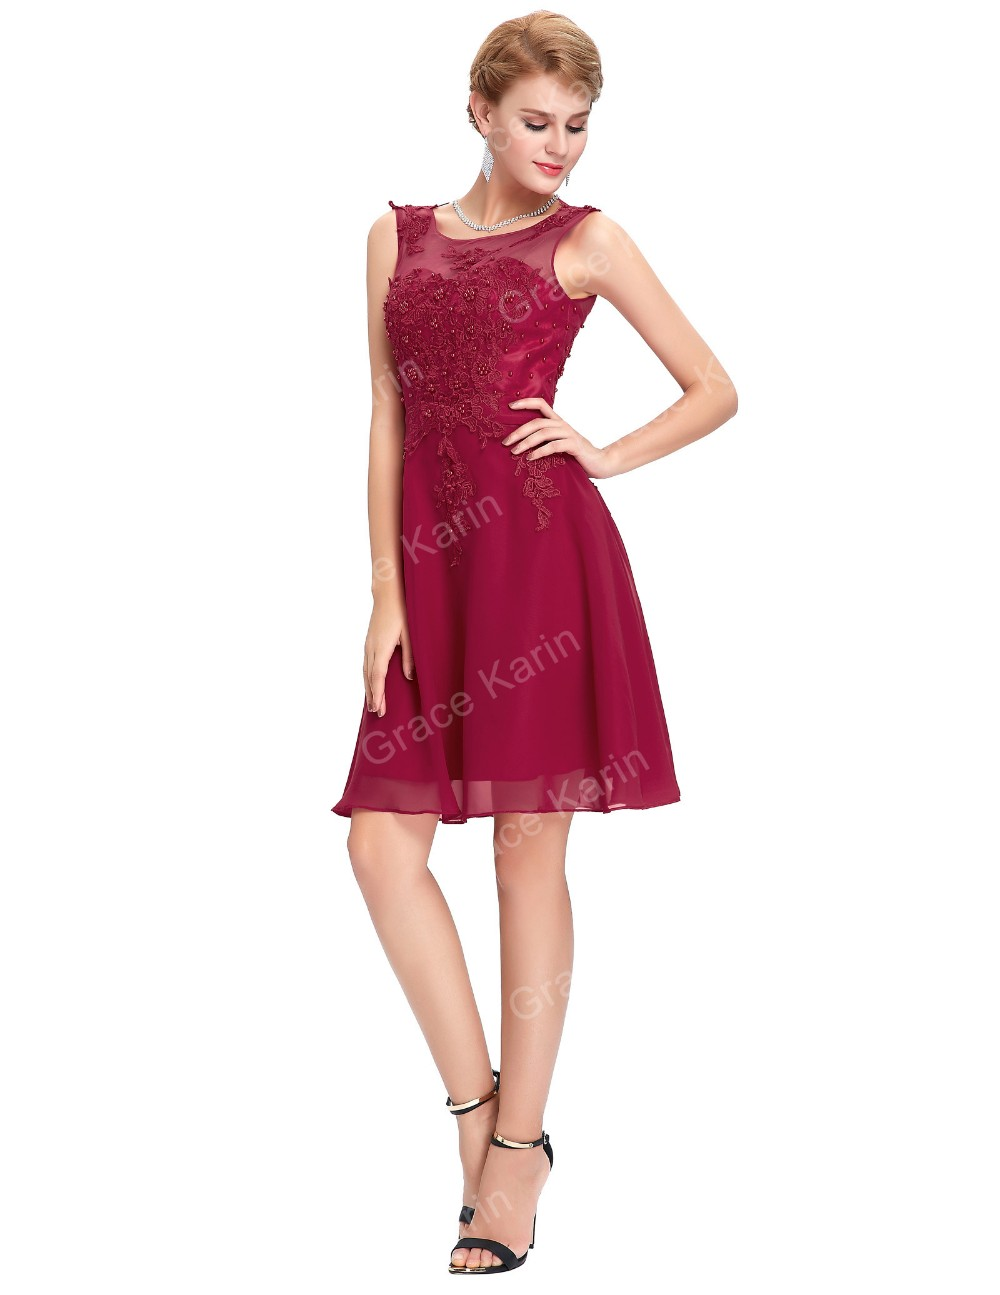 Grace Karin New Arrival Sleeveless Crew Neck Wine Red Chiffon Short Prom Dress Patterns GK000063-2